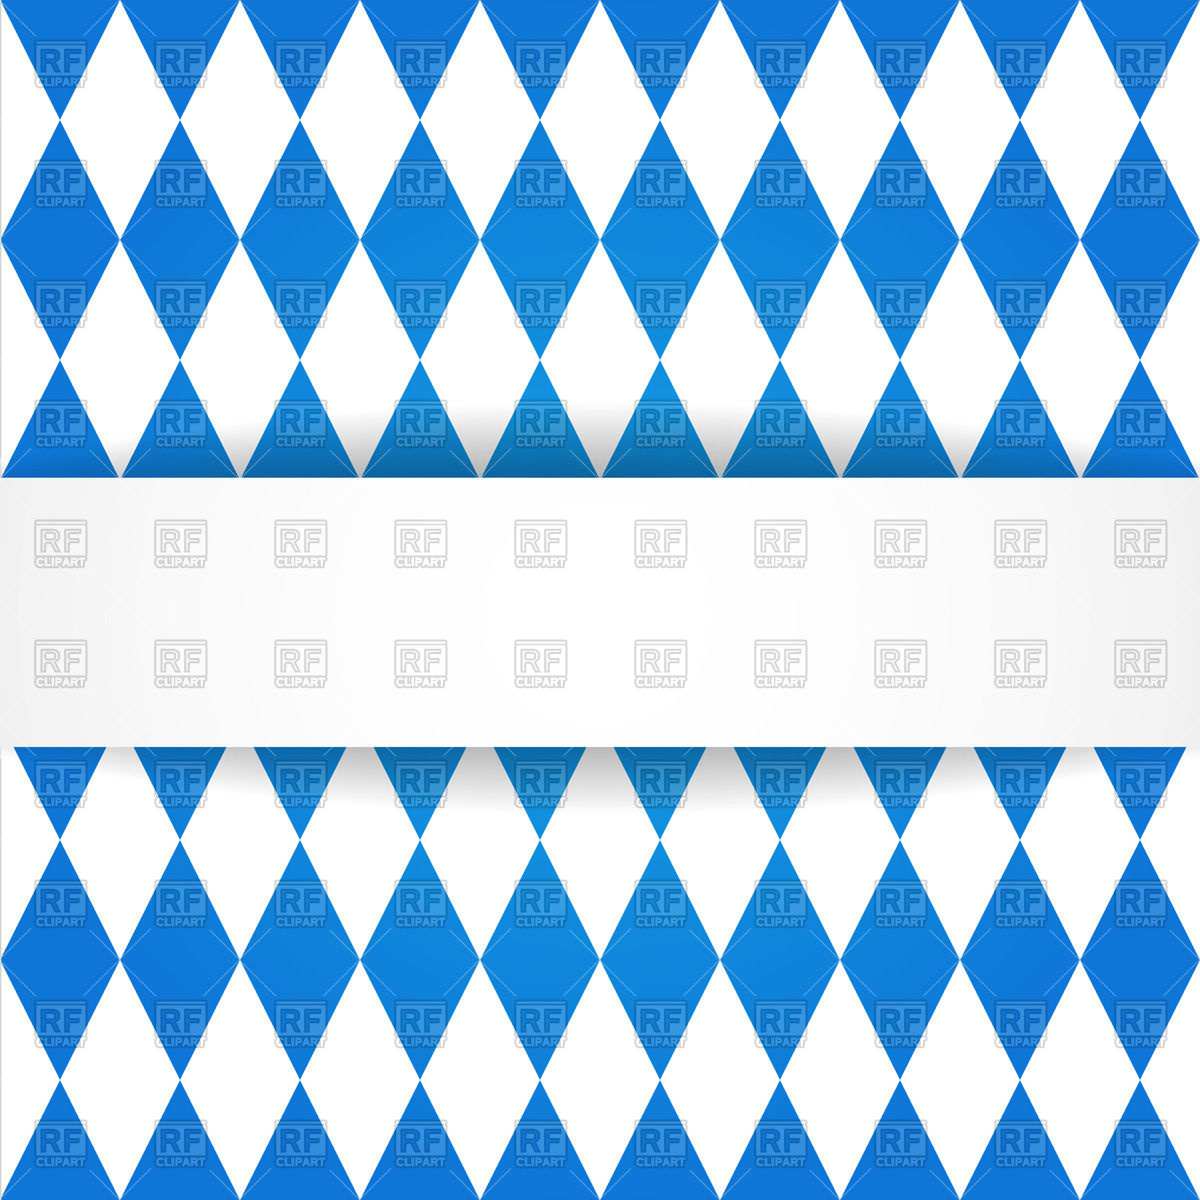 Oktoberfest background with Bavarian flag pattern Vector Image.